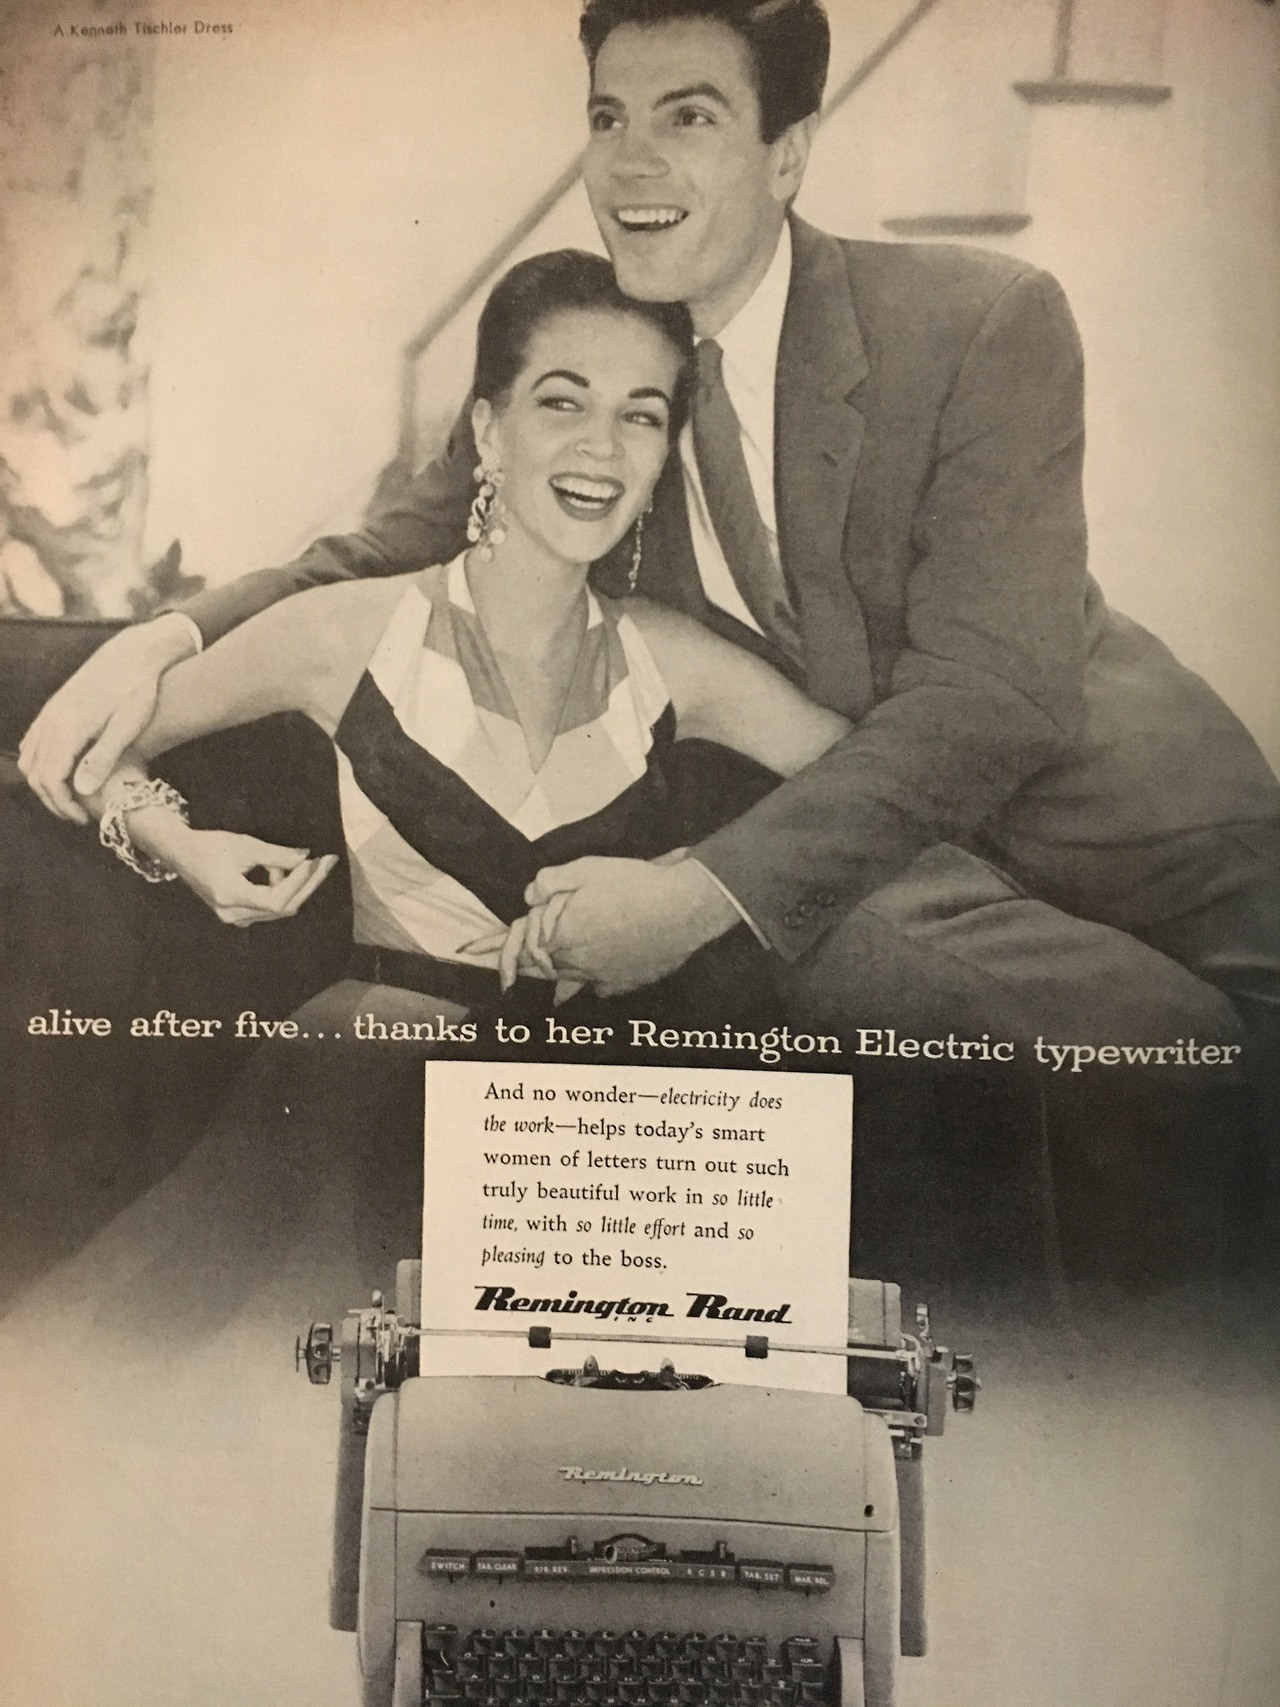 """Alive after five…thanks to her Remington Electric typewriter. And no wonder - electricity does the work - helps today's smart women of letters turn out such truly beautiful work in so little time, with so little effort and so pleasing to the boss.""   Charm. June 1954."